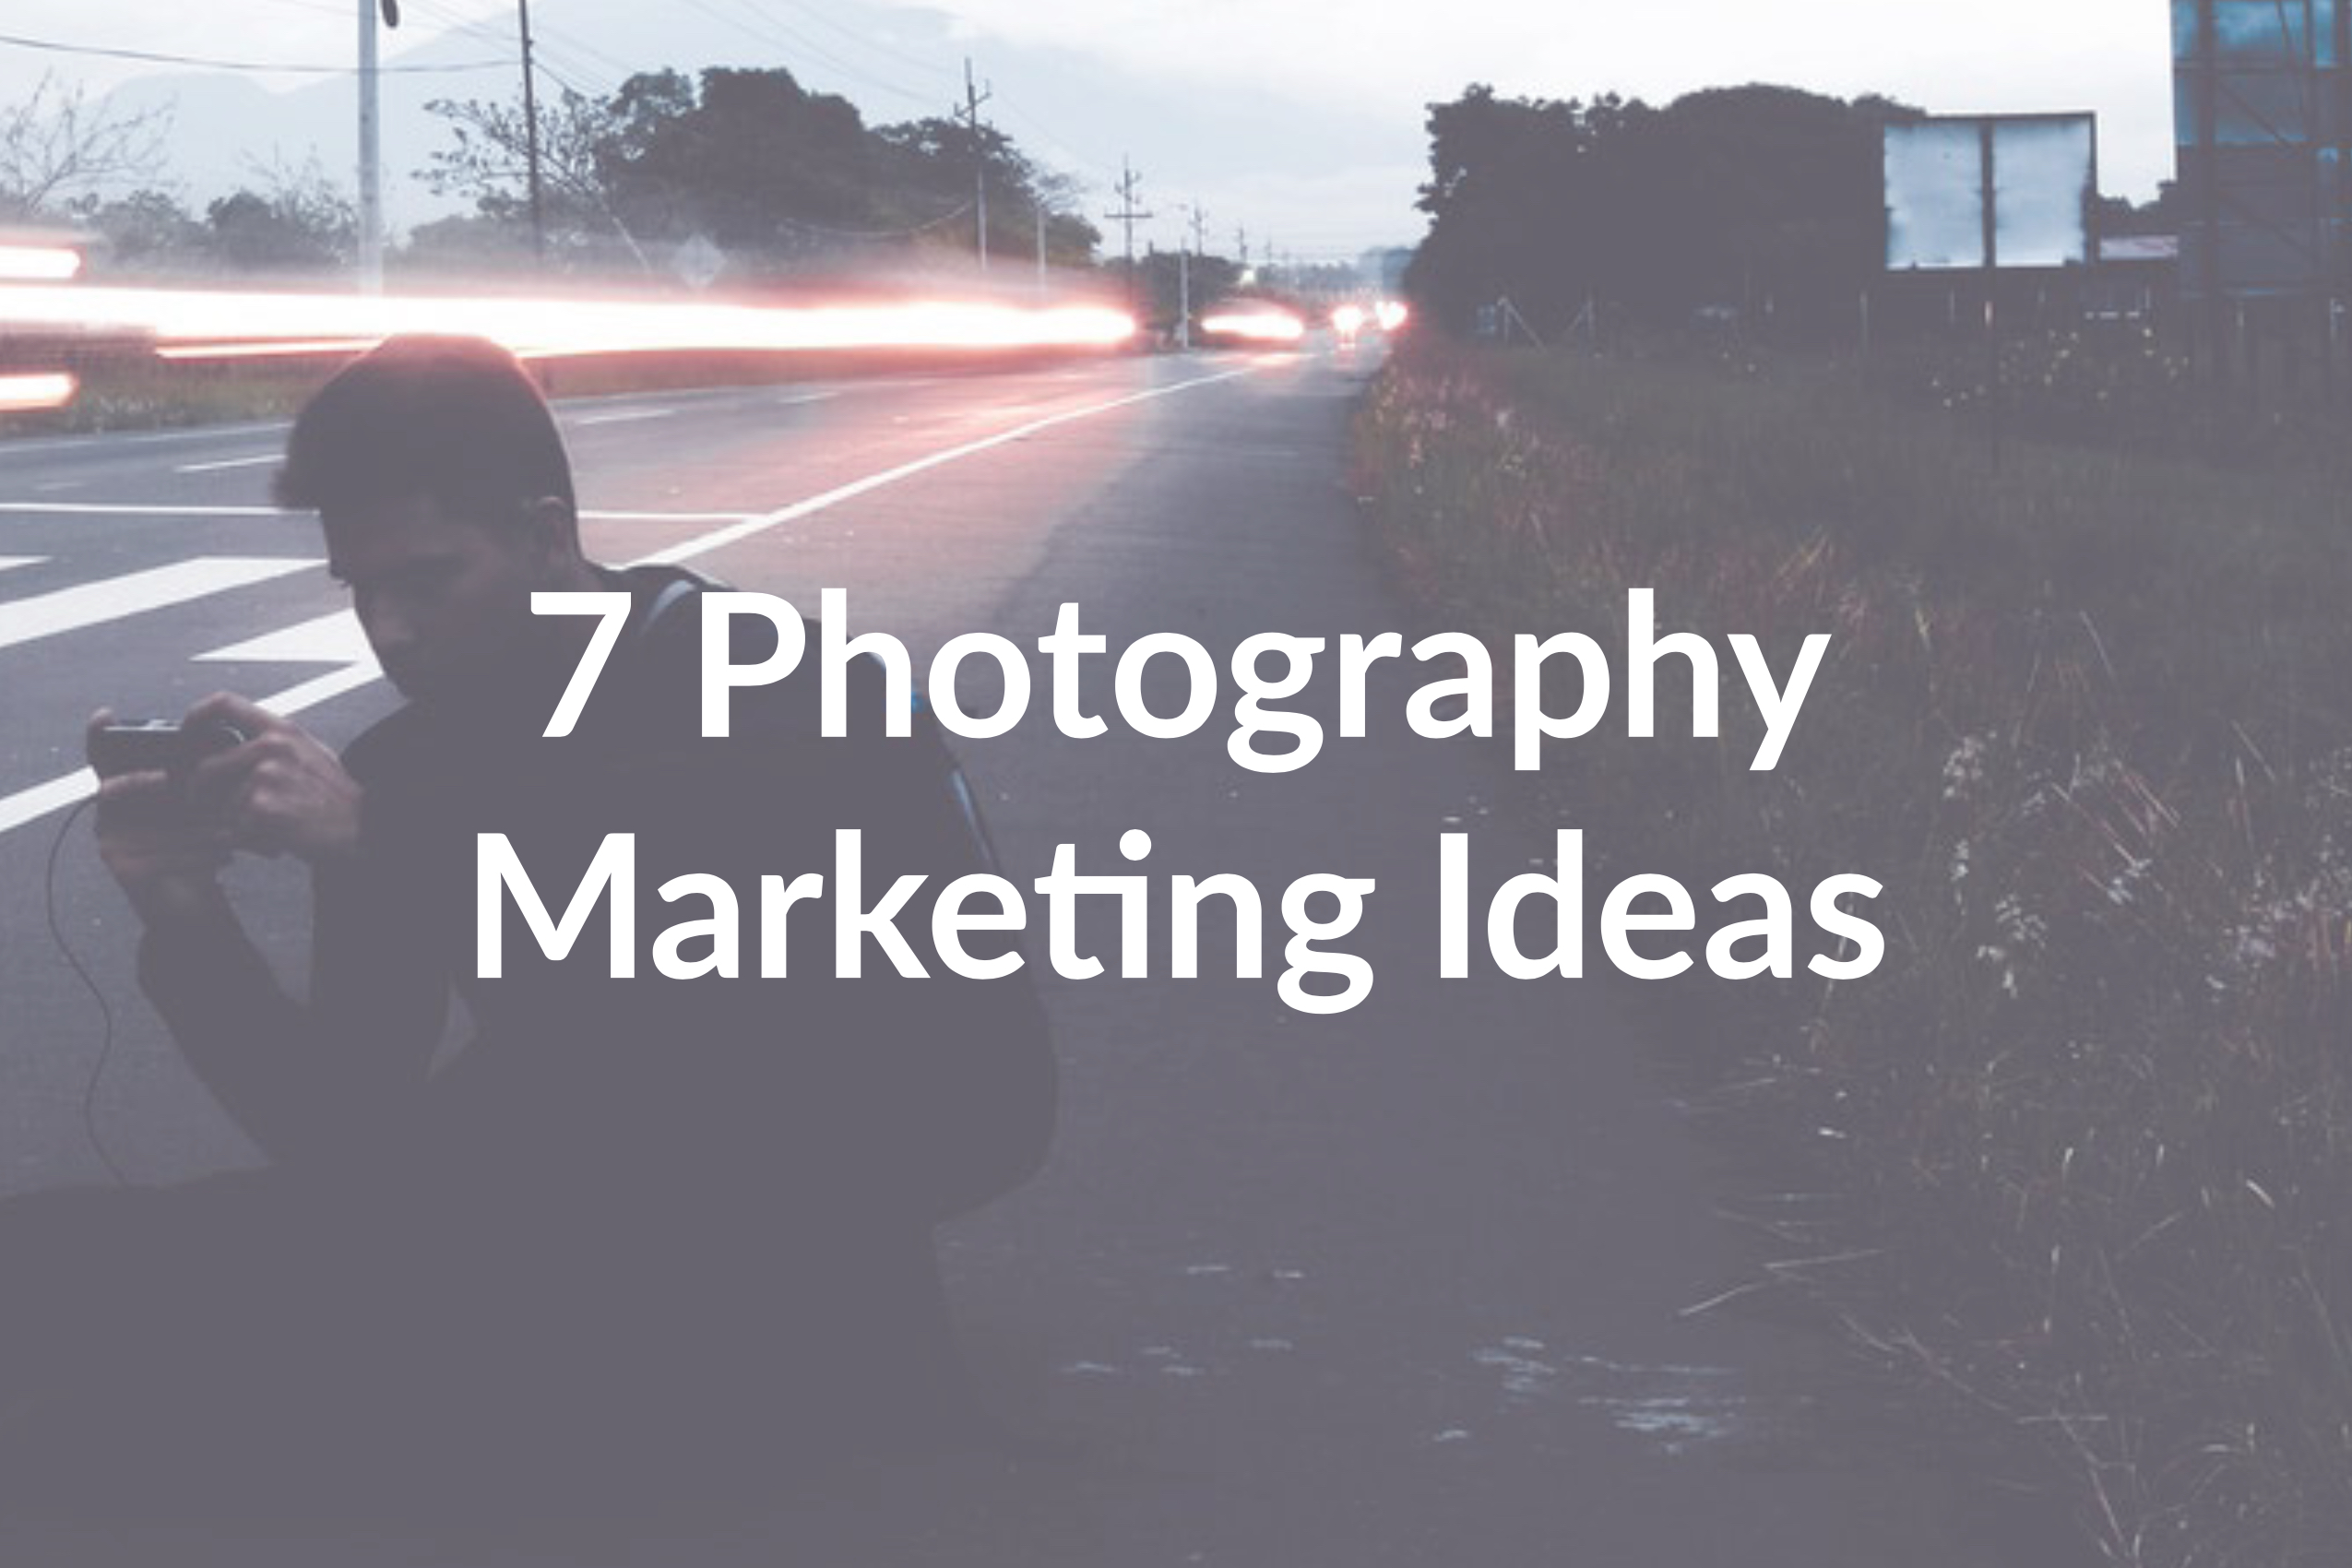 7 Photography Marketing Ideas to Implement Today